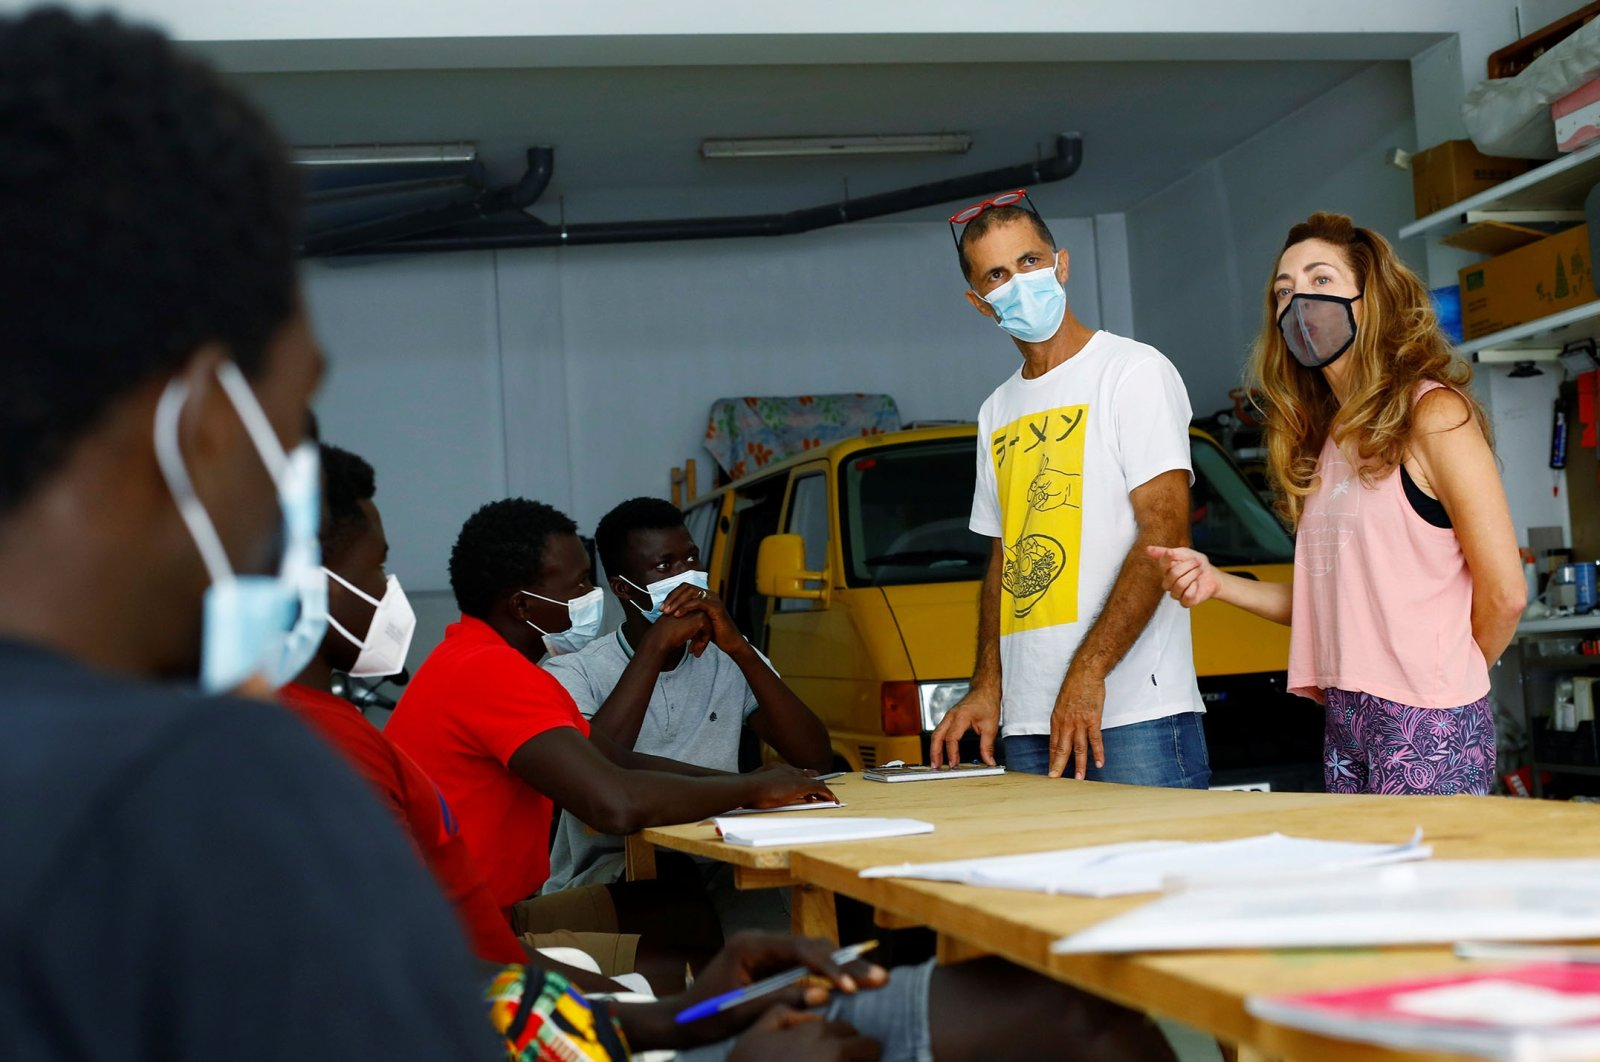 Isabel Florido (R) and Tito Martin teach Spanish classes to a group of Senegalese migrants who arrived on the island by boat, in Las Palmas, on the island of Gran Canaria, Spain, July 21, 2021. (Reuters Photo)